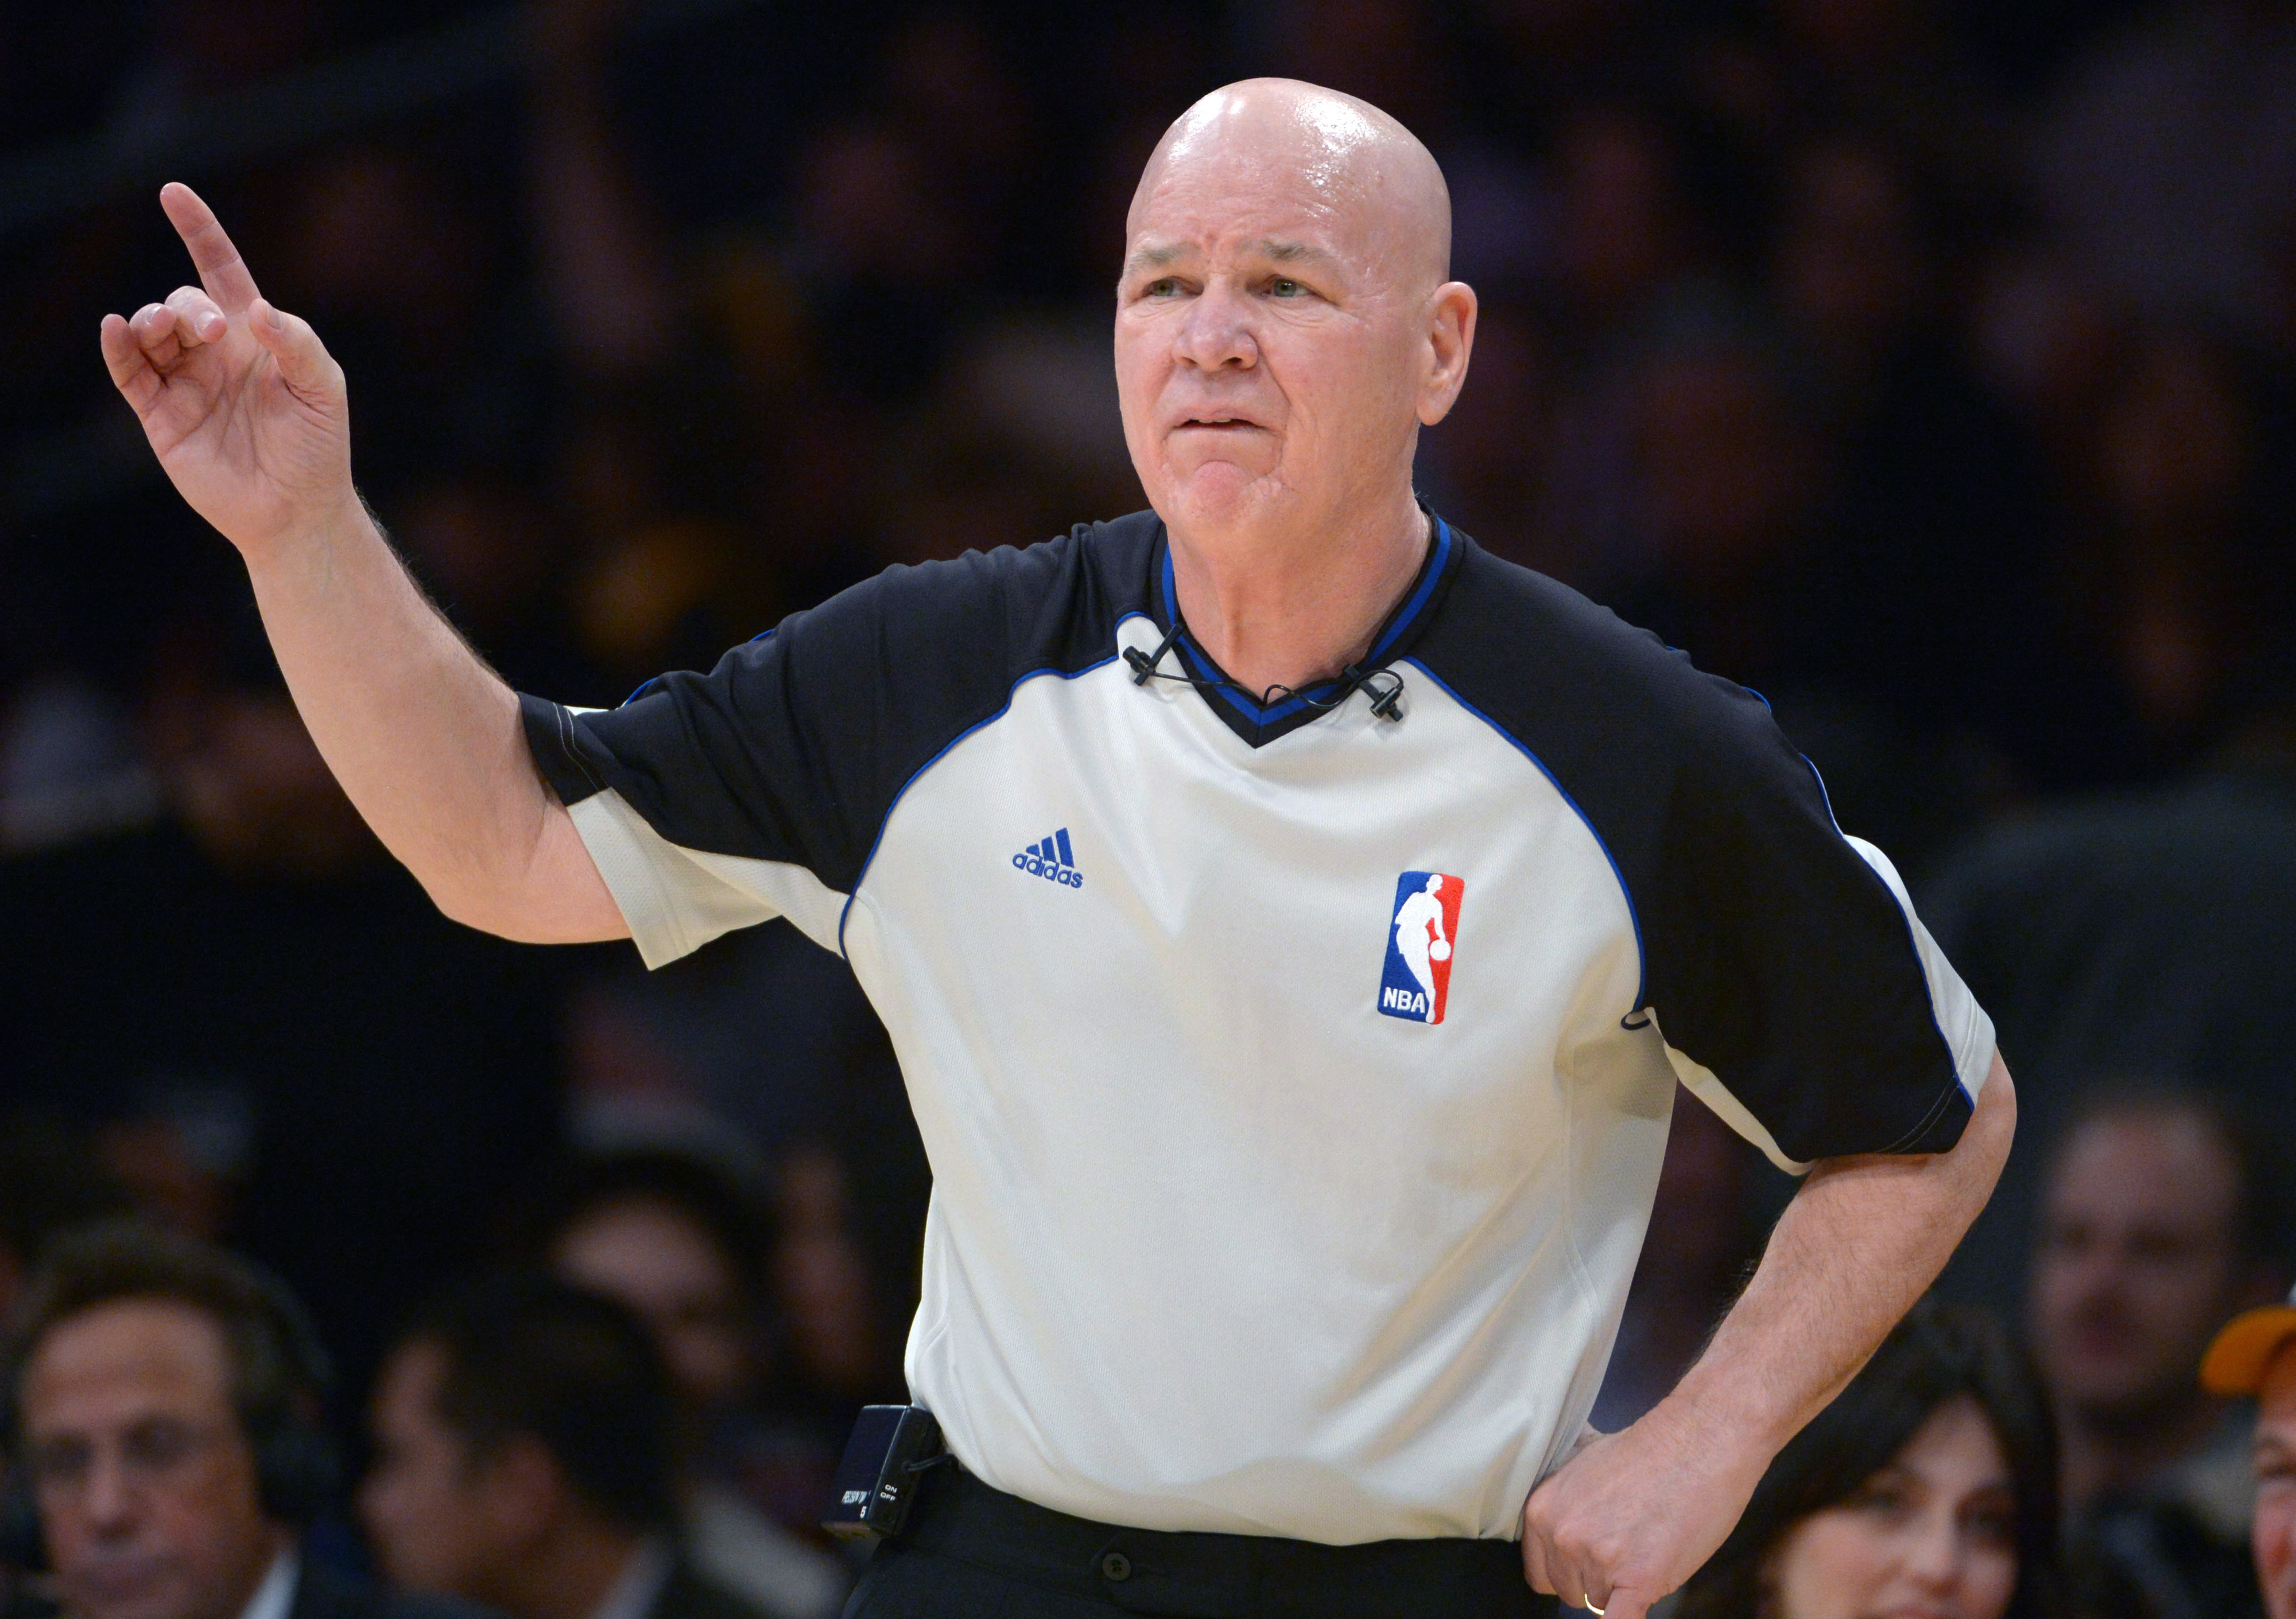 The time Tim Donaghy dropped Joey Crawford with a punch